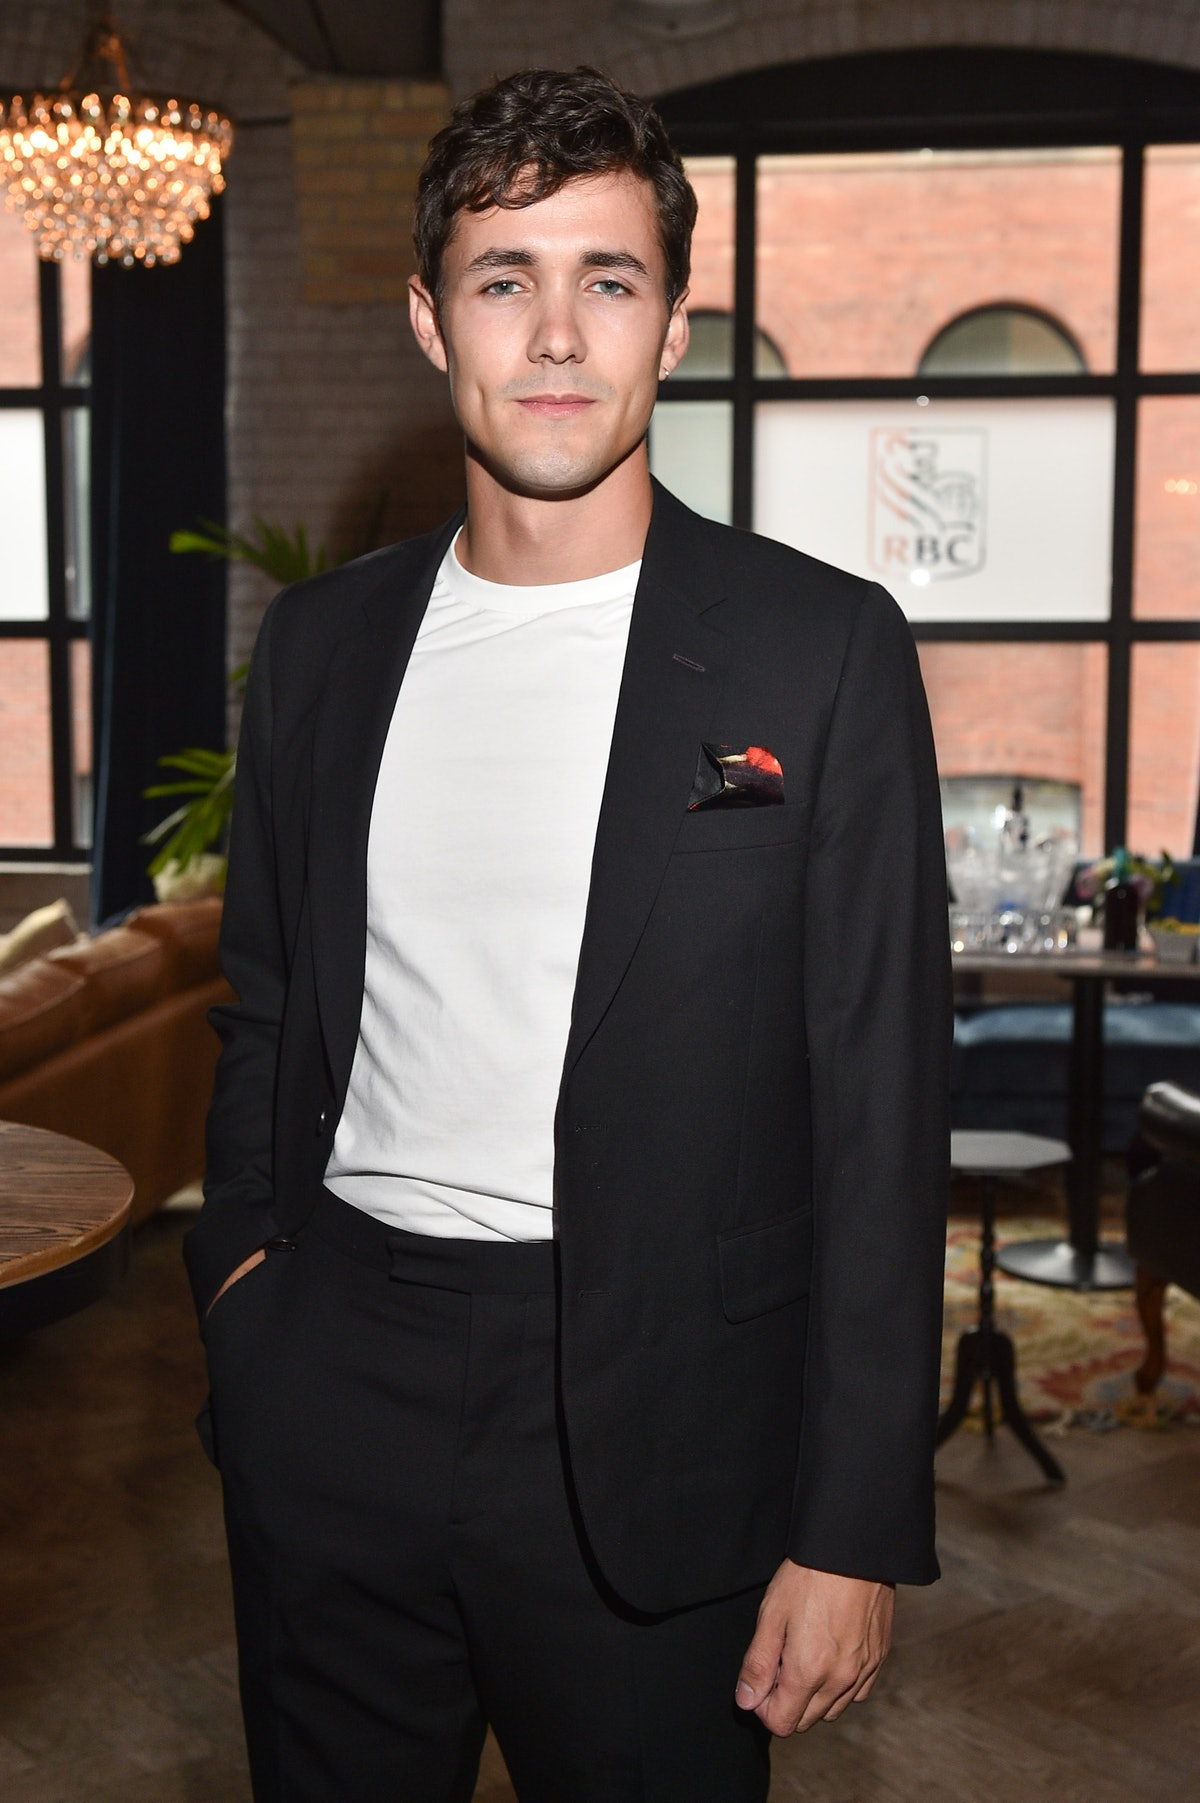 """RBC Hosted """"The Song of Names"""" Cocktail Party At RBC House Toronto Film Festival 2019"""